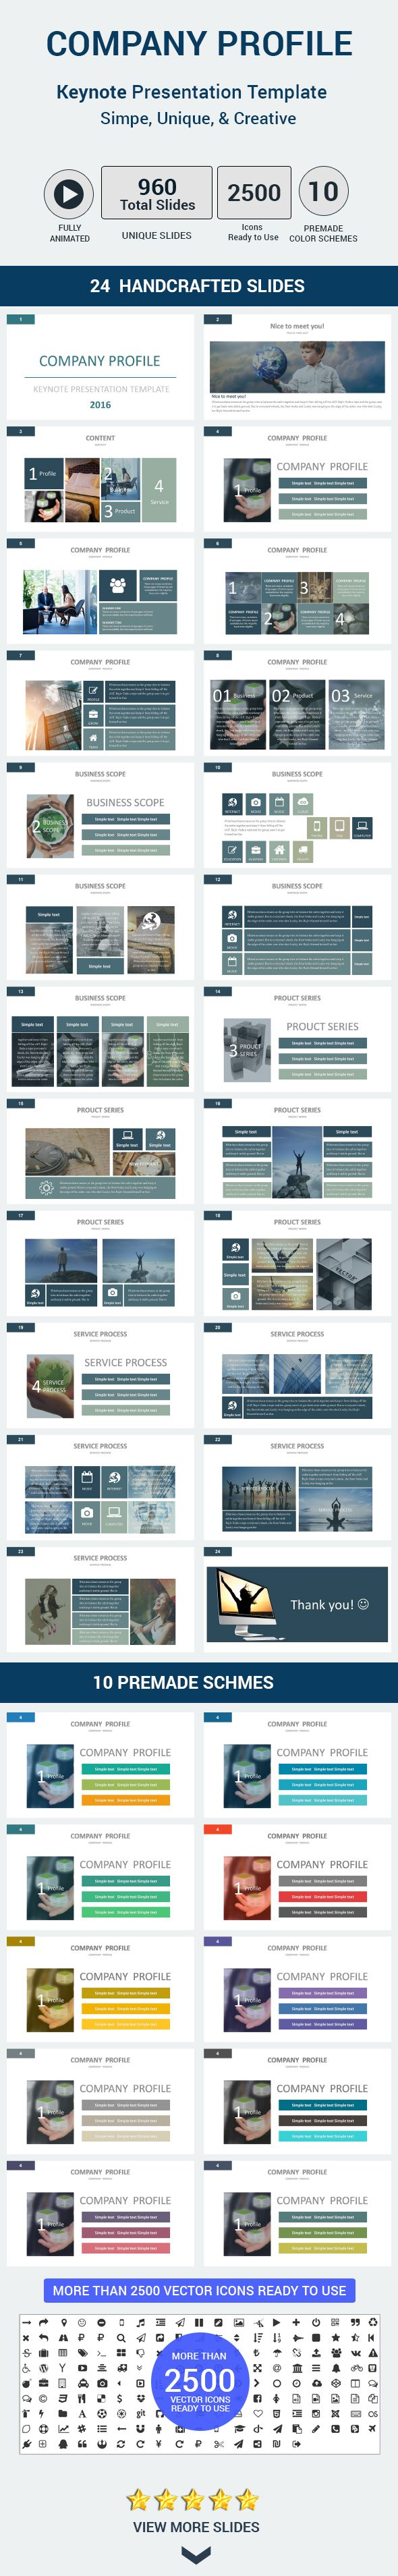 COMPANY PROFILE Keynote Presentation Template. Download here: http://graphicriver.net/item/company-profile-keynote-presentation-template-/16561928?ref=ksioks